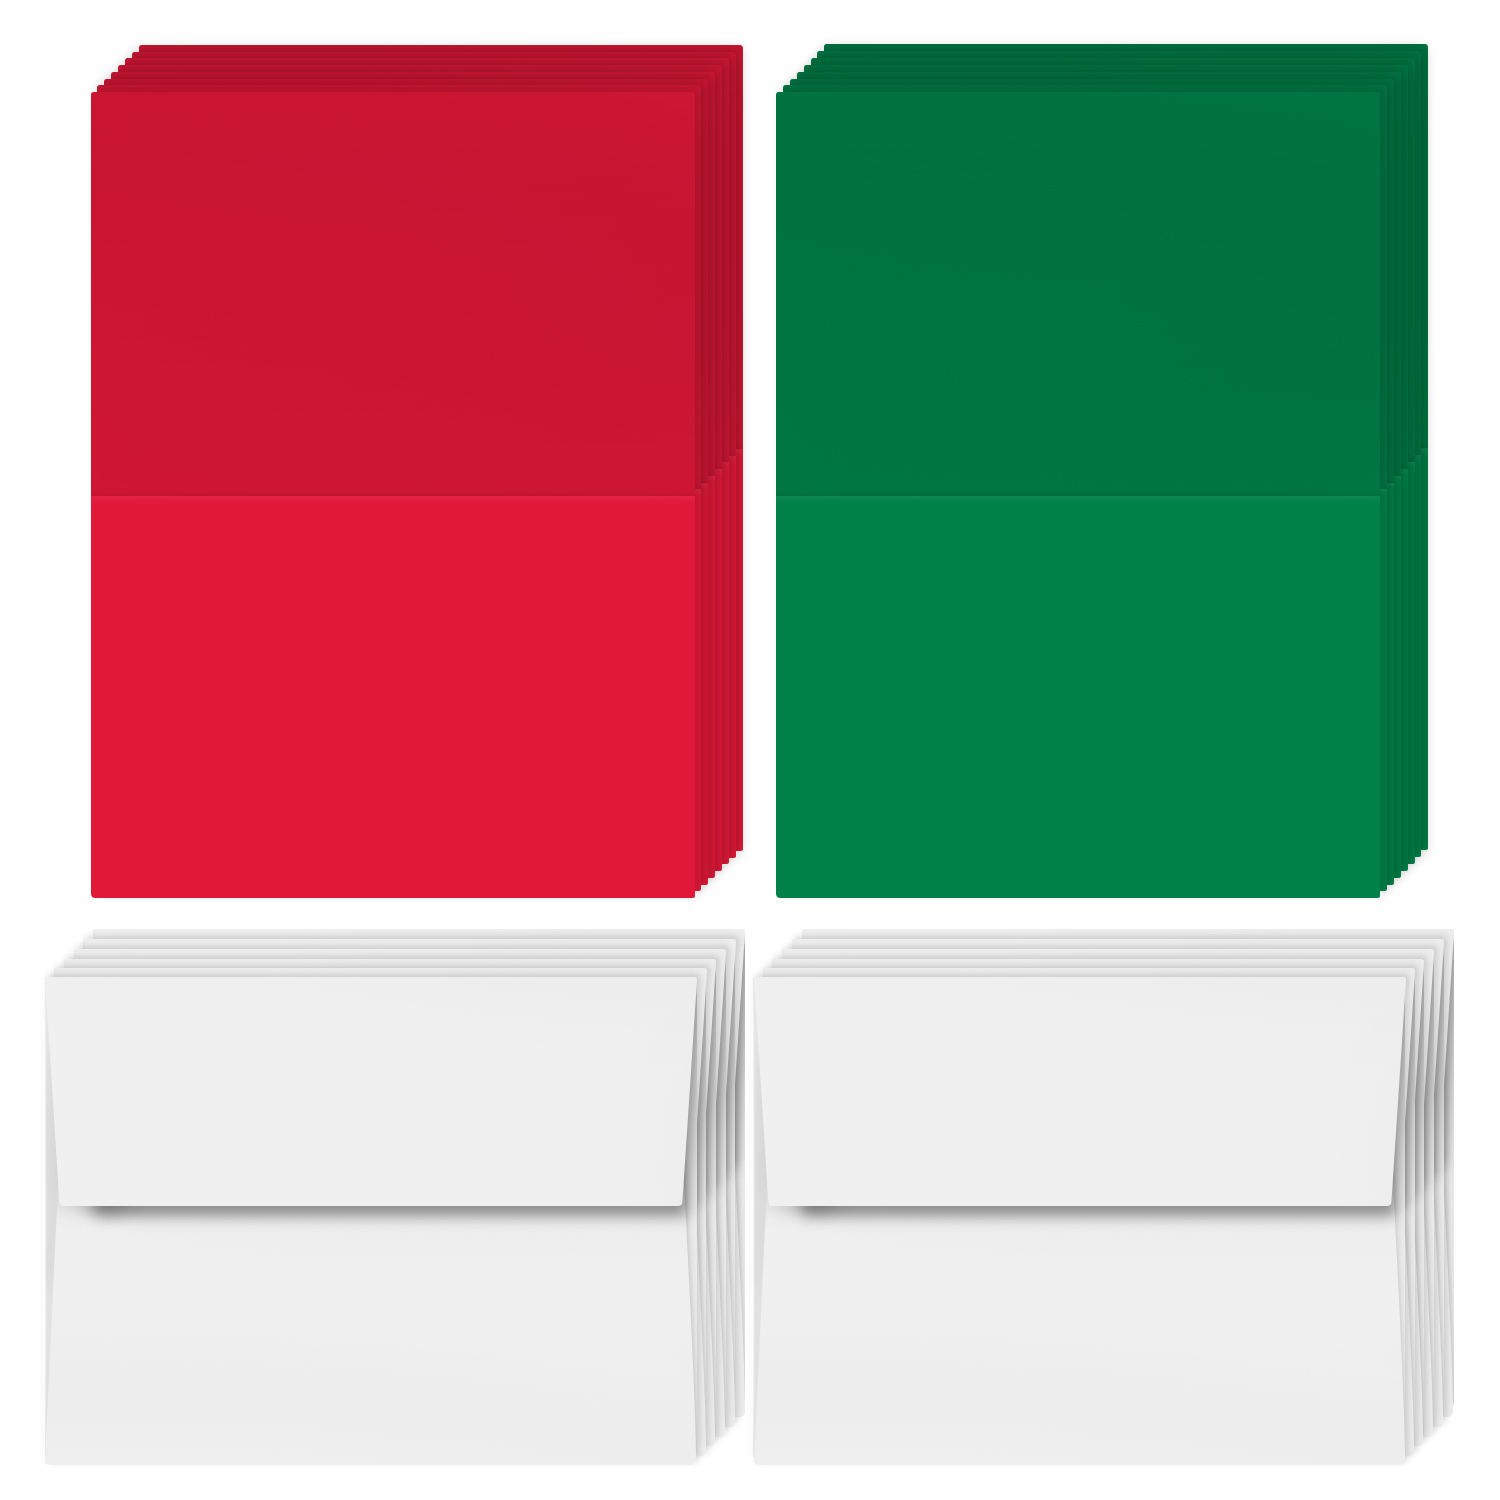 Blank Green and Red Holiday Cards